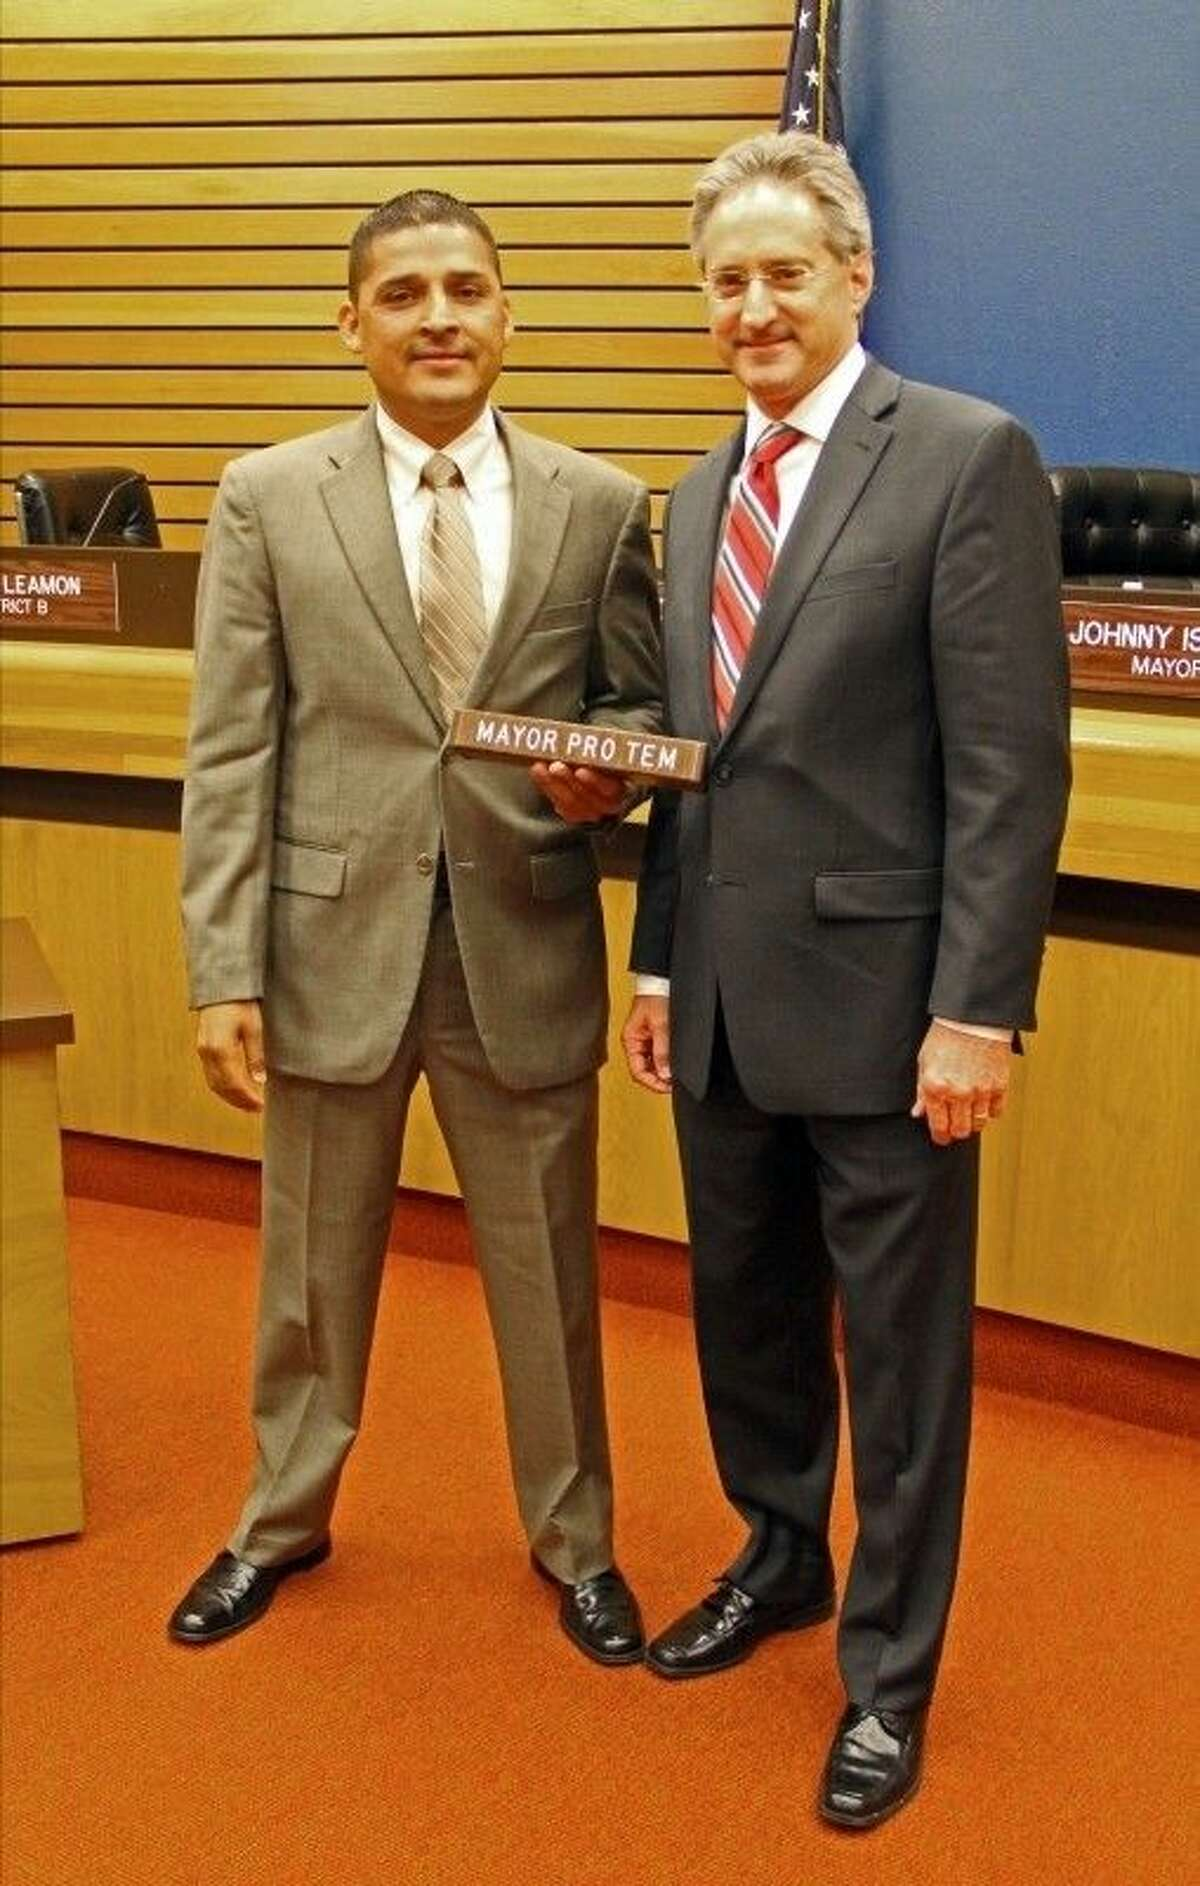 Pasadena City Councilmembers Ornaldo Ybarra (left) and Darrell Morrison (right) were elected to serve as Mayor Pro Tem at a council meeting held Tuesday (July 21).